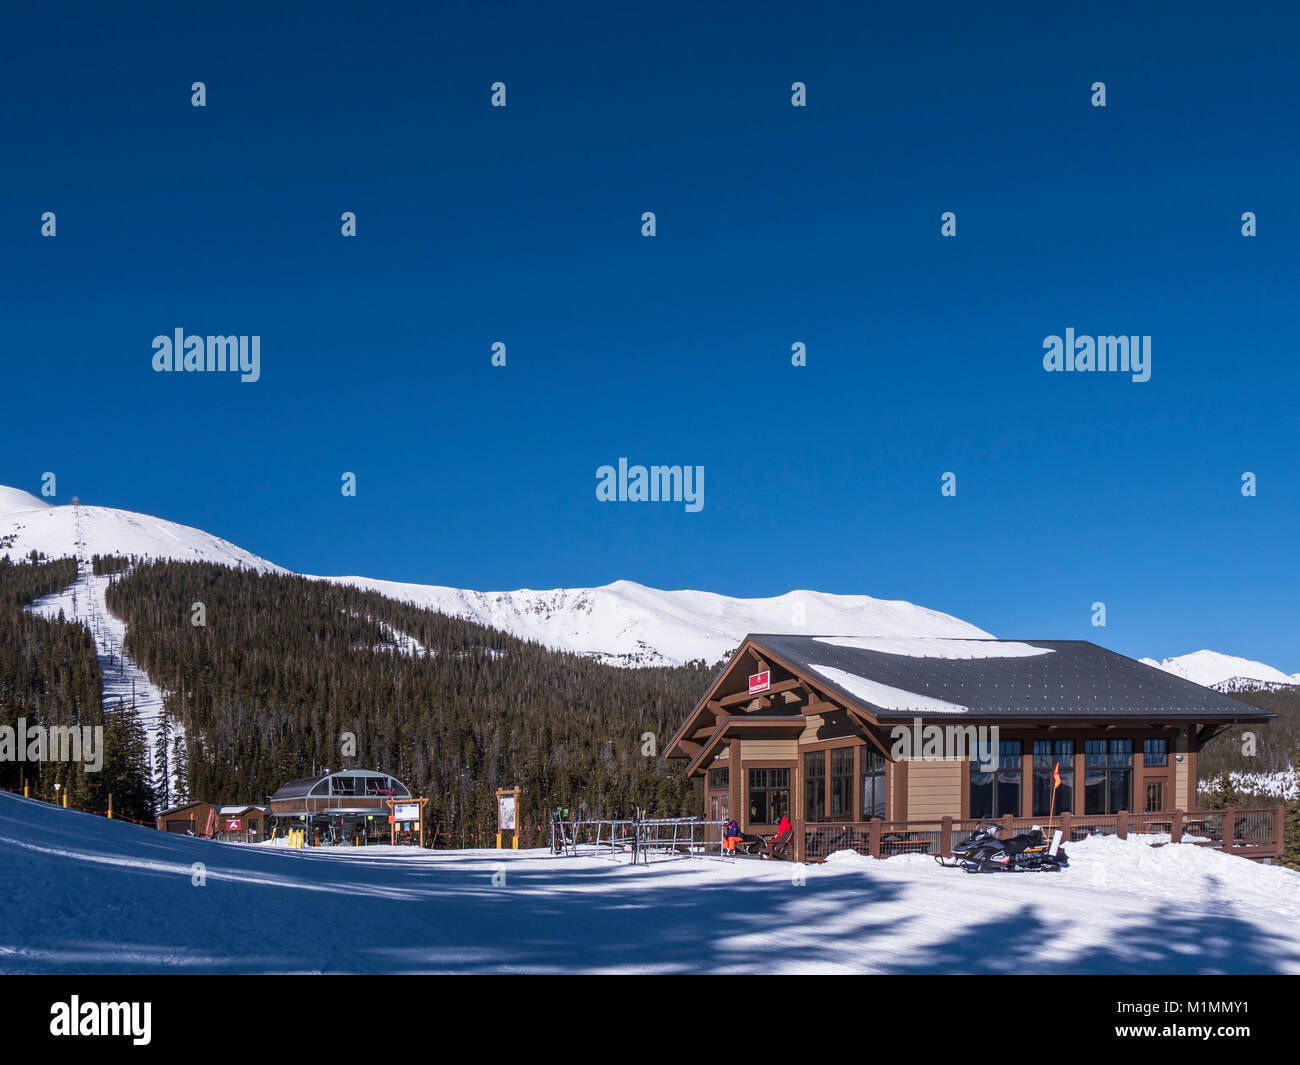 Horizon Hut at the base of Peak 6, Breckenridge Ski Resort, Breckenridge, Colorado. - Stock Image